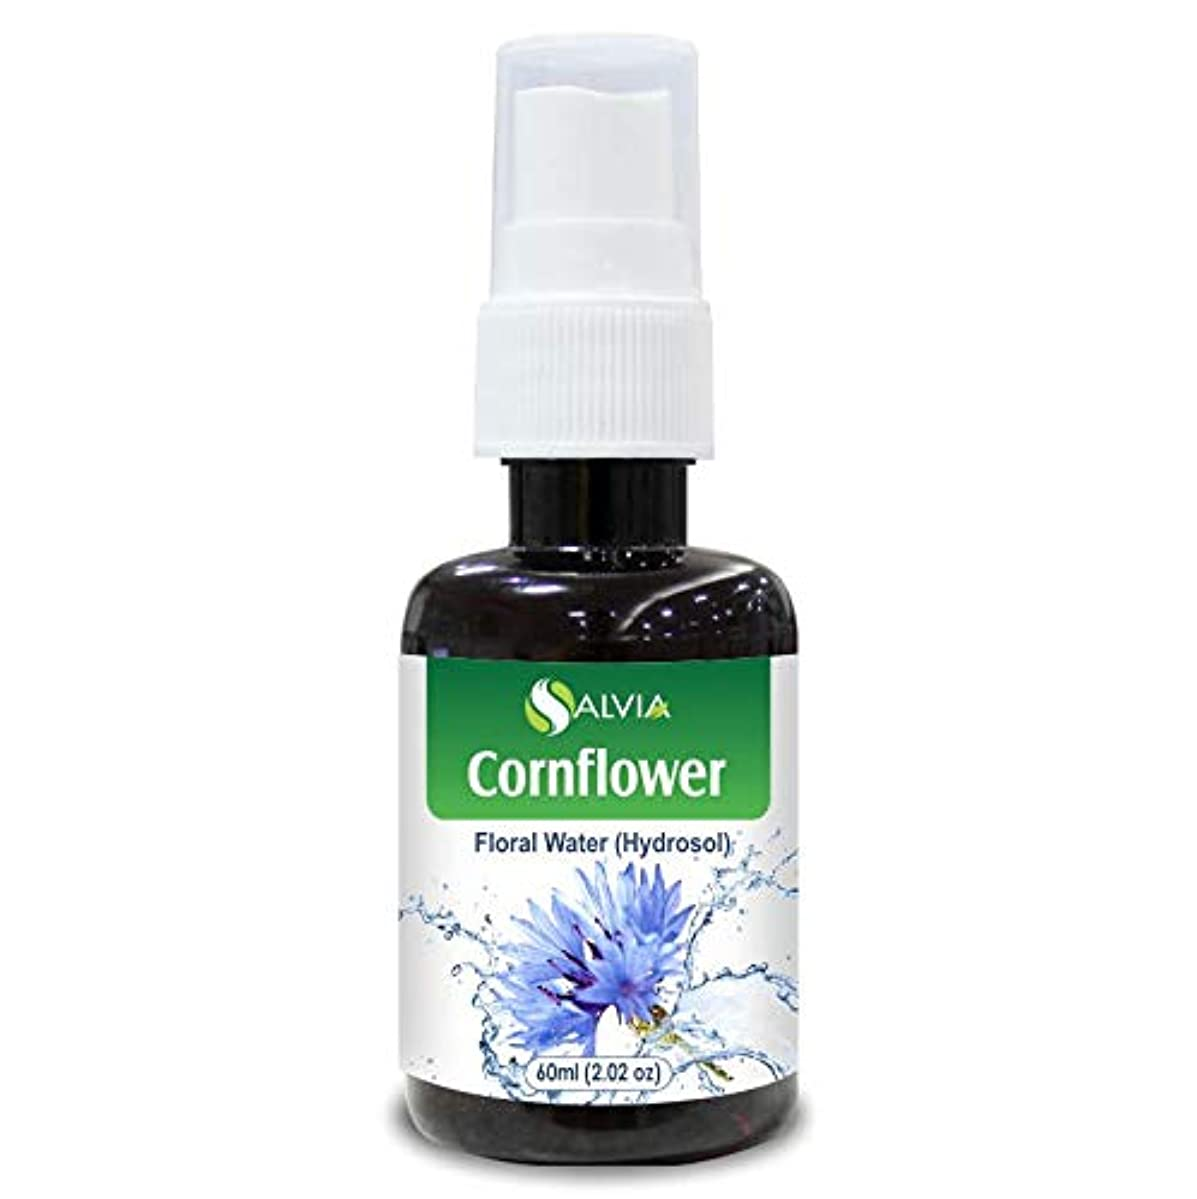 教育するマネージャーシャツCornflower Floral Water 60ml (Hydrosol) 100% Pure And Natural